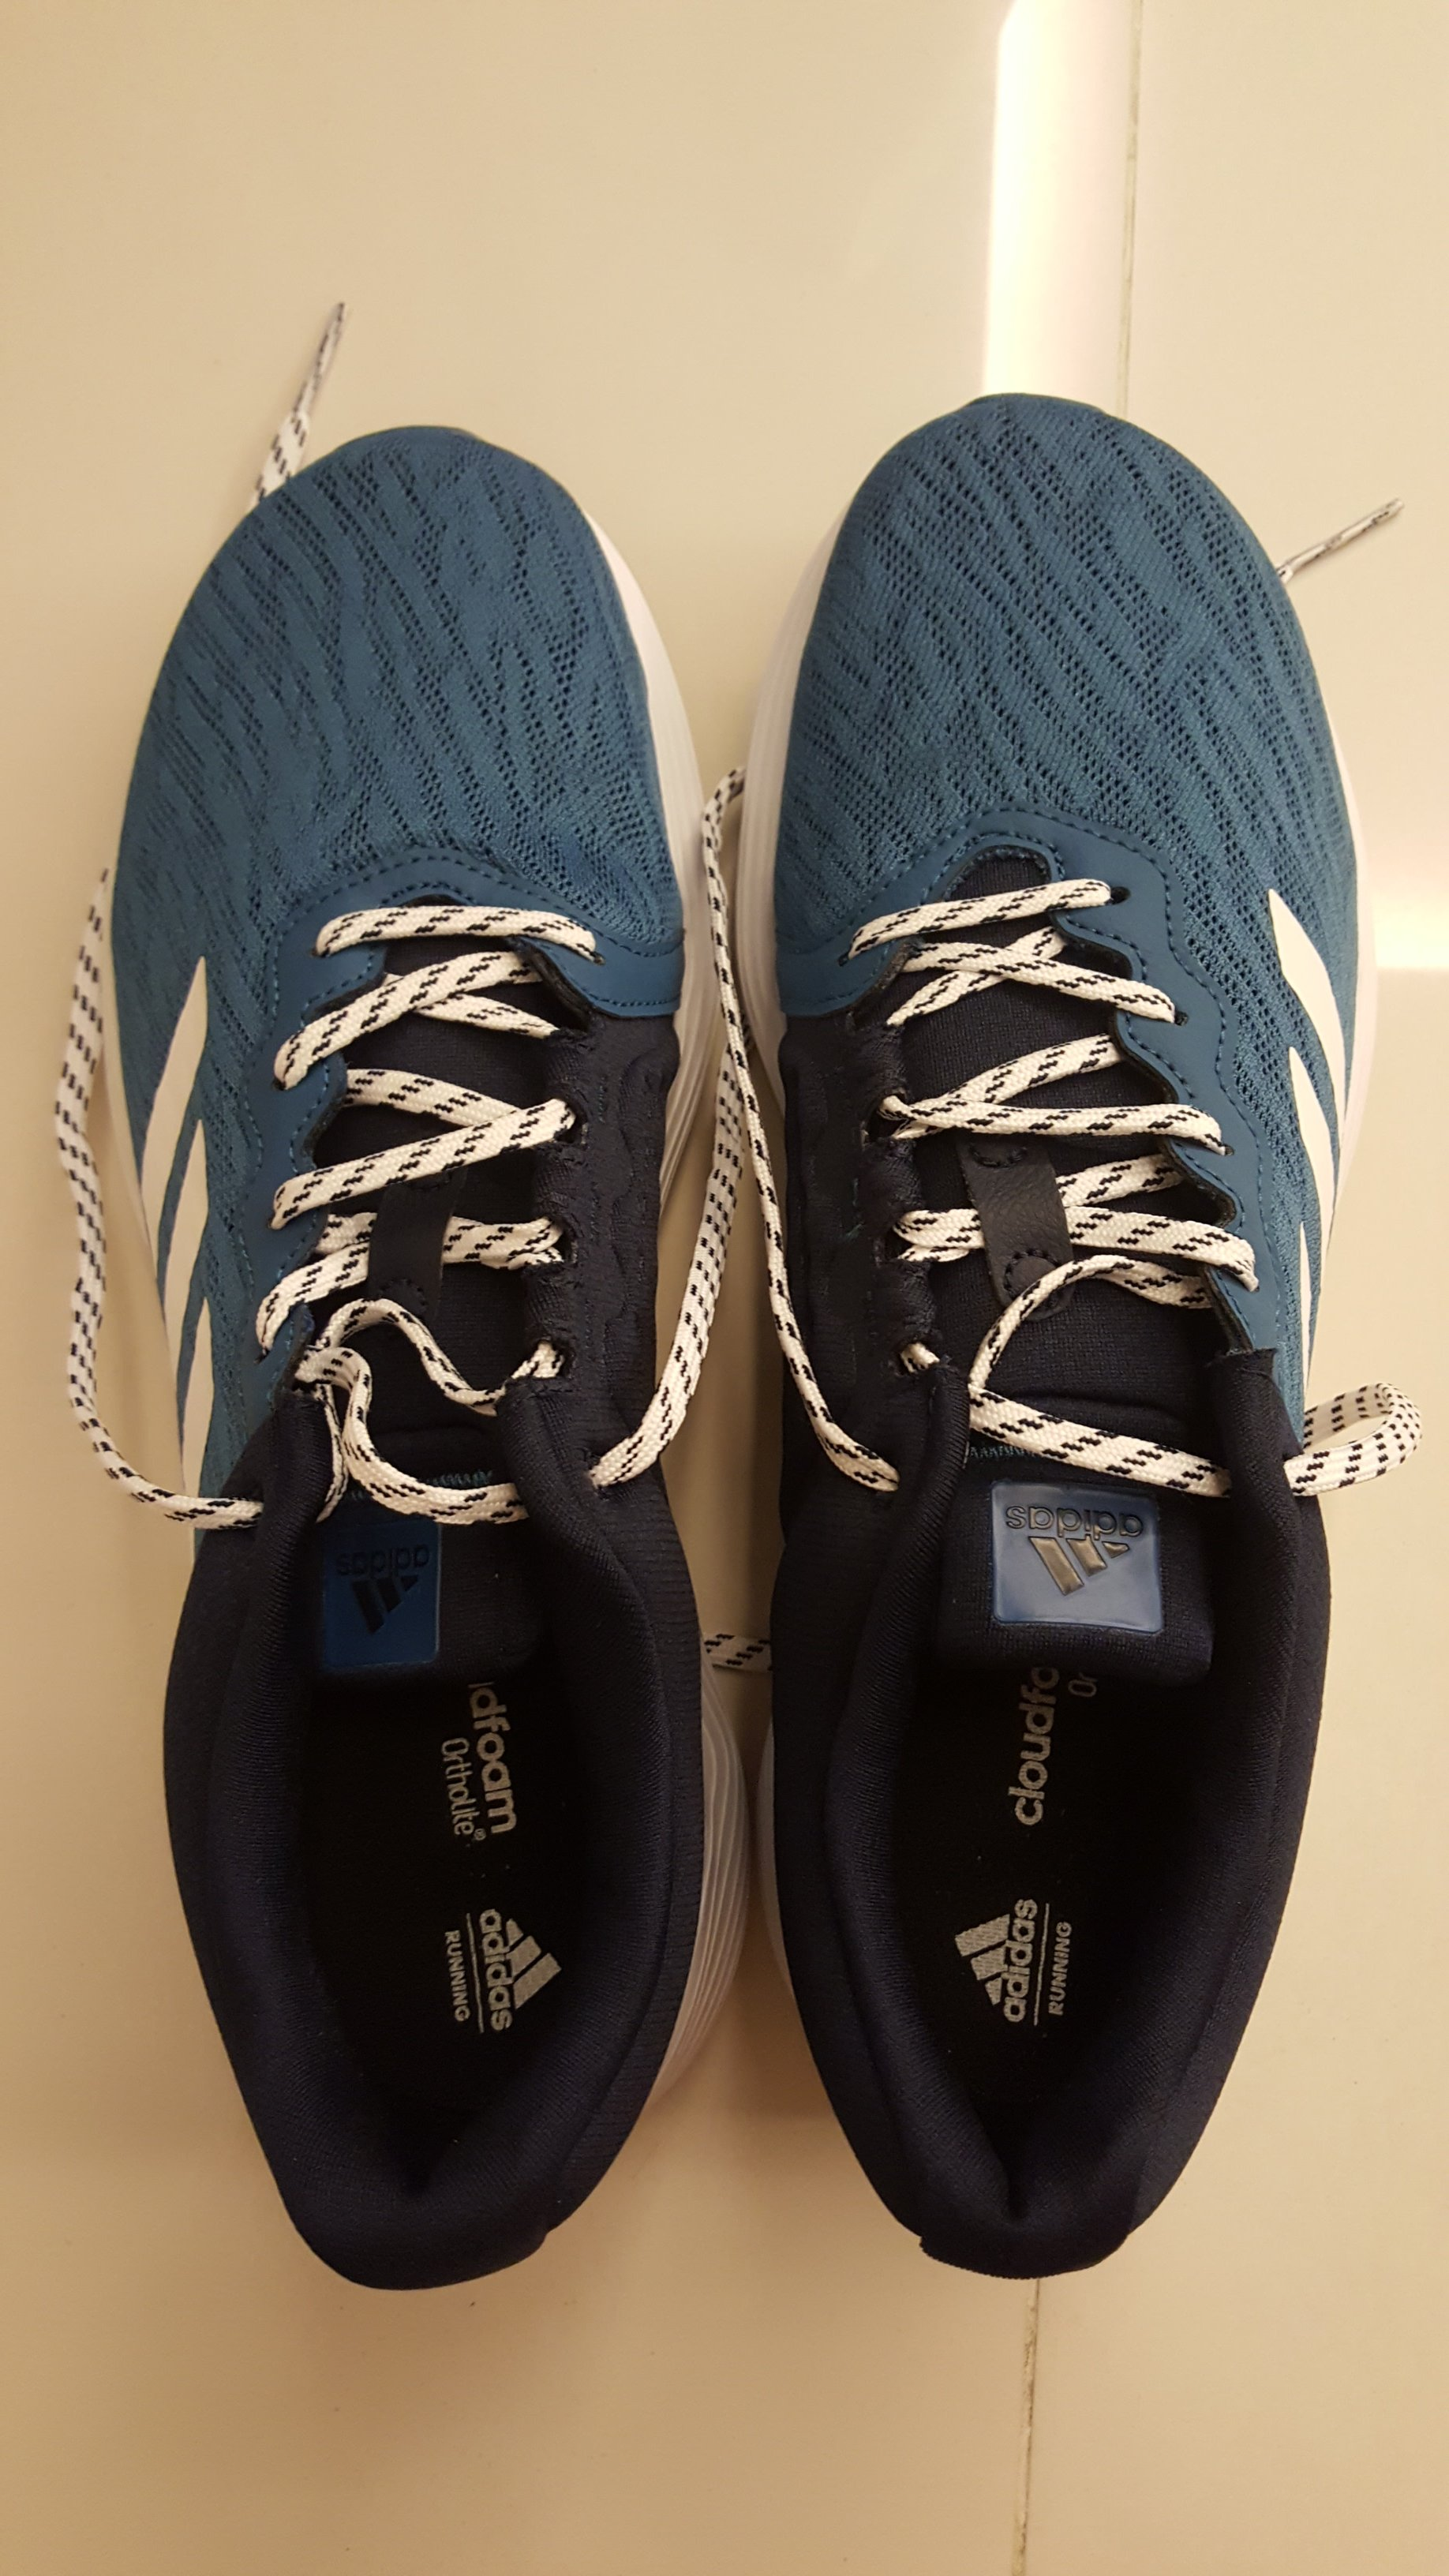 bordado Credencial barrer  Adidas Cloudfoam Ortholite, my new running shoe – DR KOH